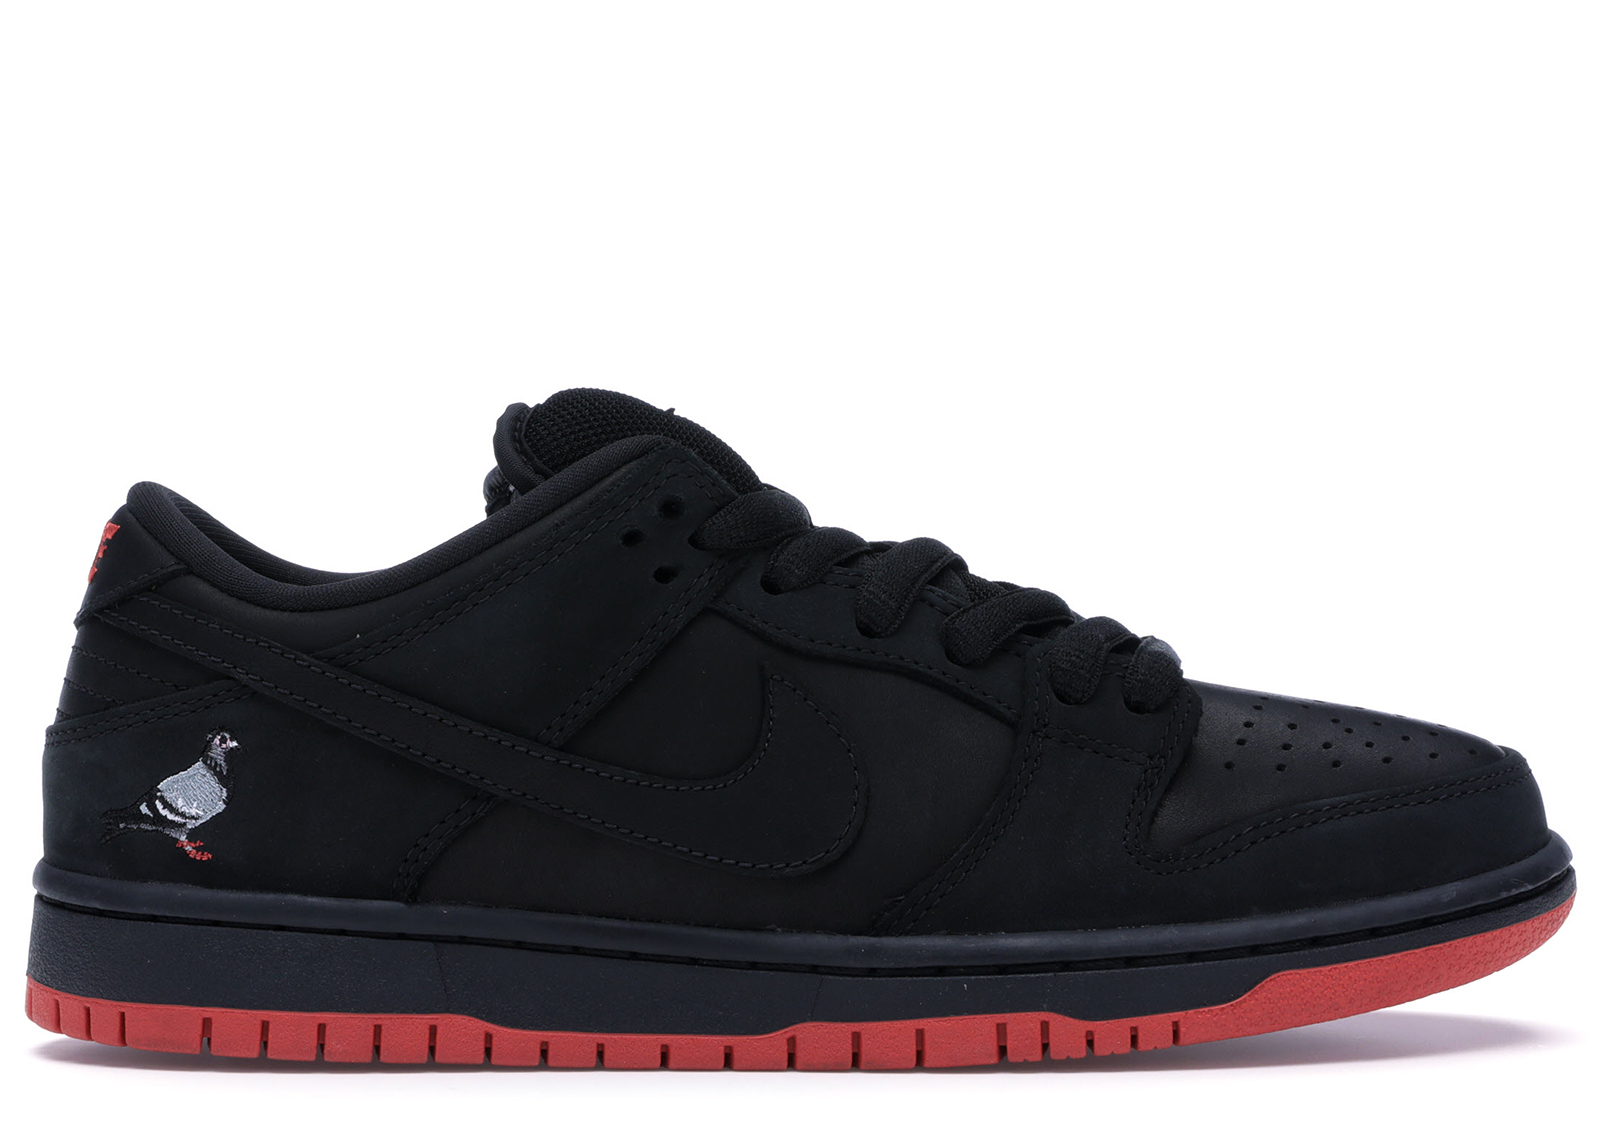 new products coupon codes new products Sb Dunk Low Black Pigeon in Black/Black-Sienna